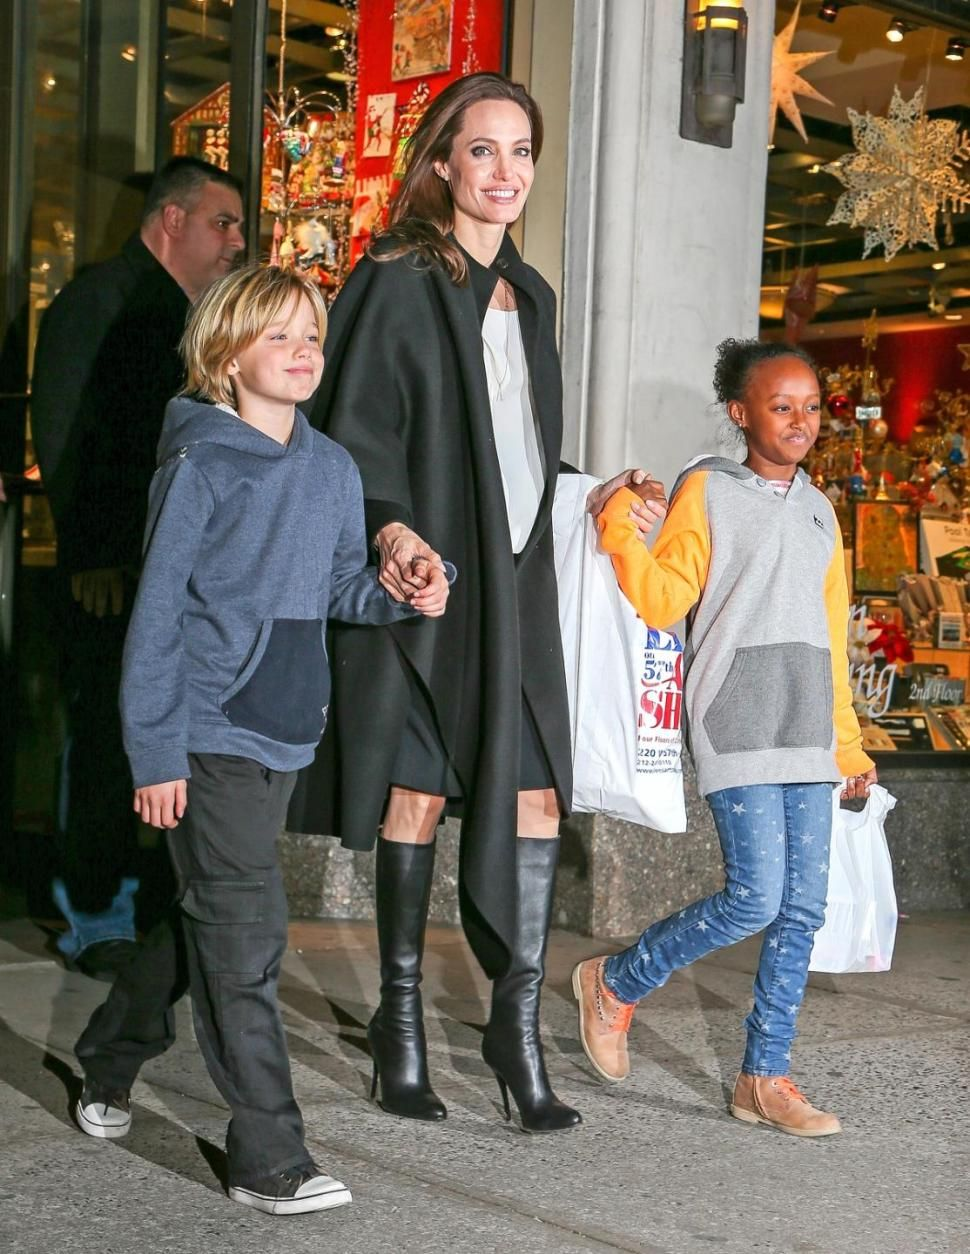 Angelina Jolie flashes wedding ring during day out with kids